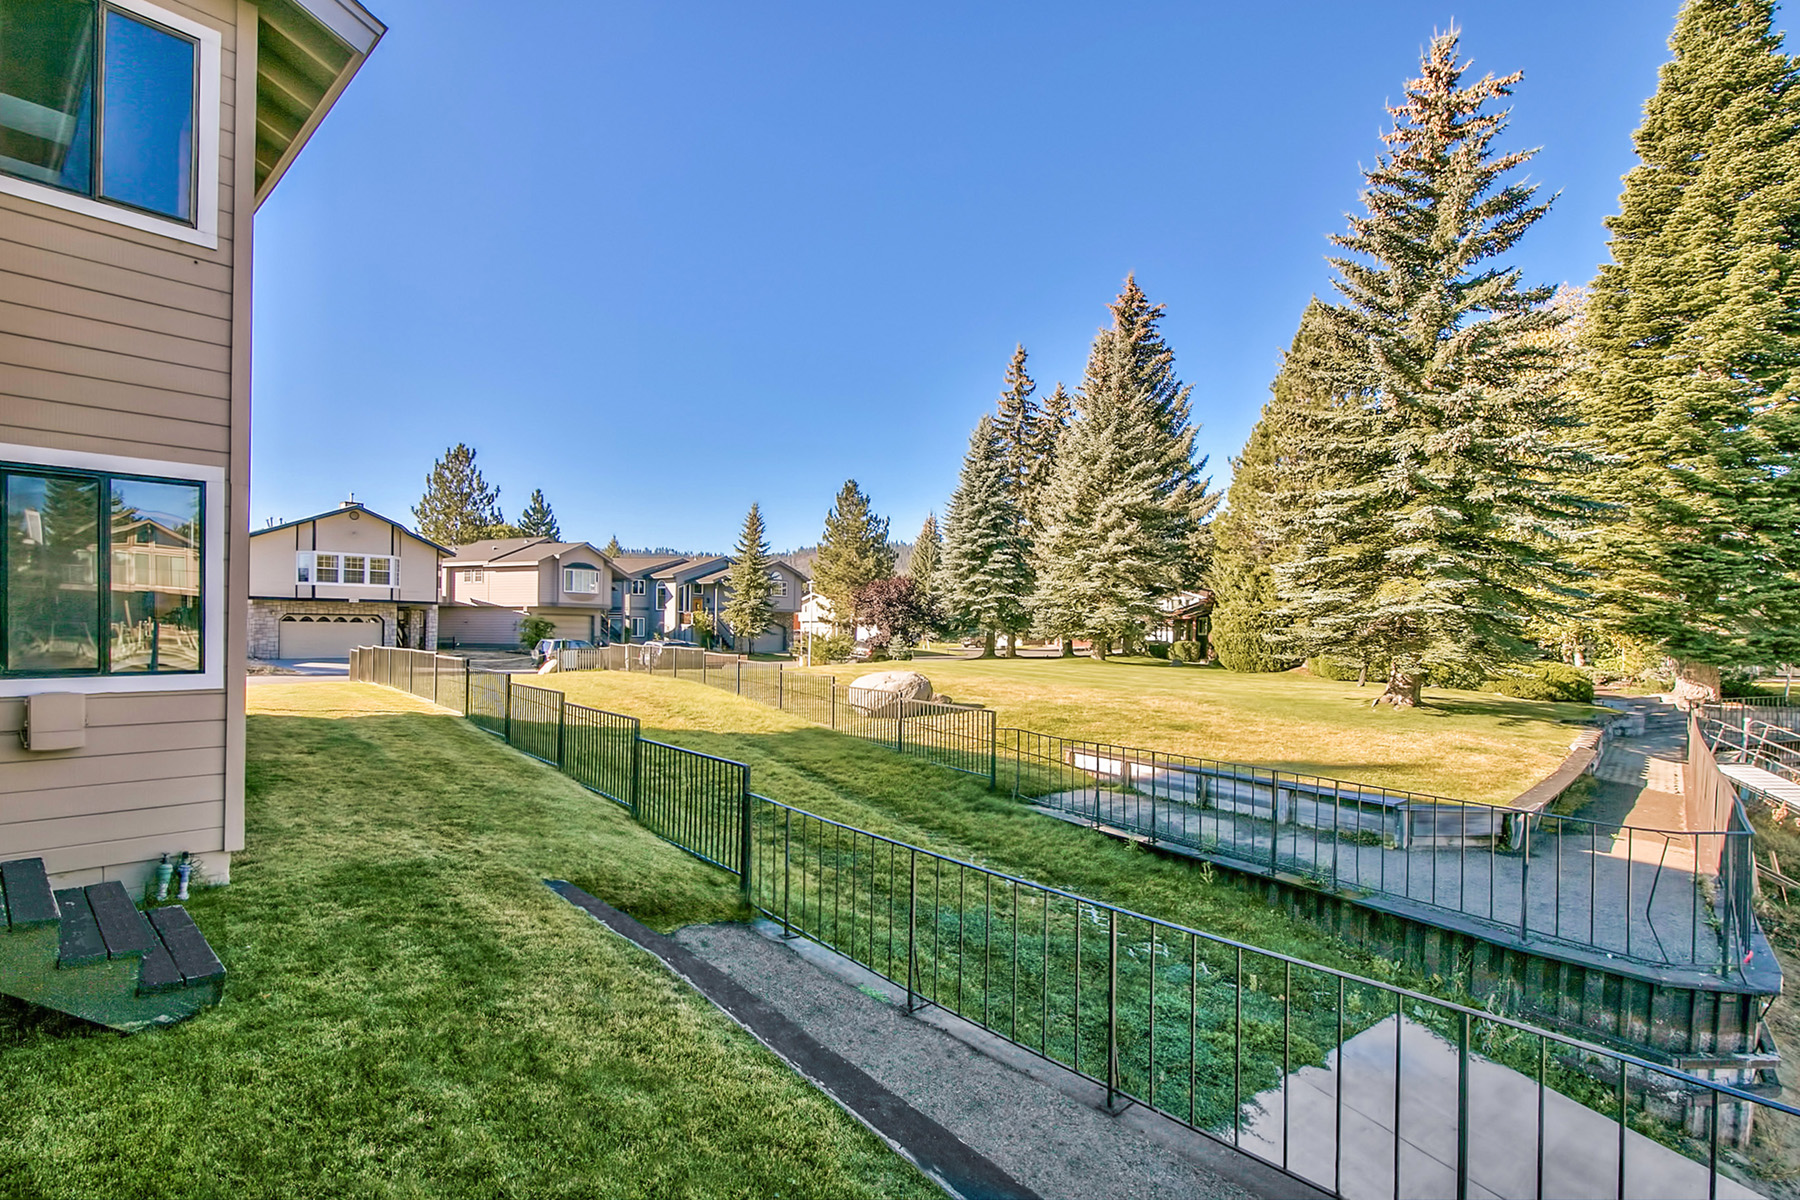 United states south lake tahoe 2075 slalom court for for Luxury homes for sale in lake tahoe